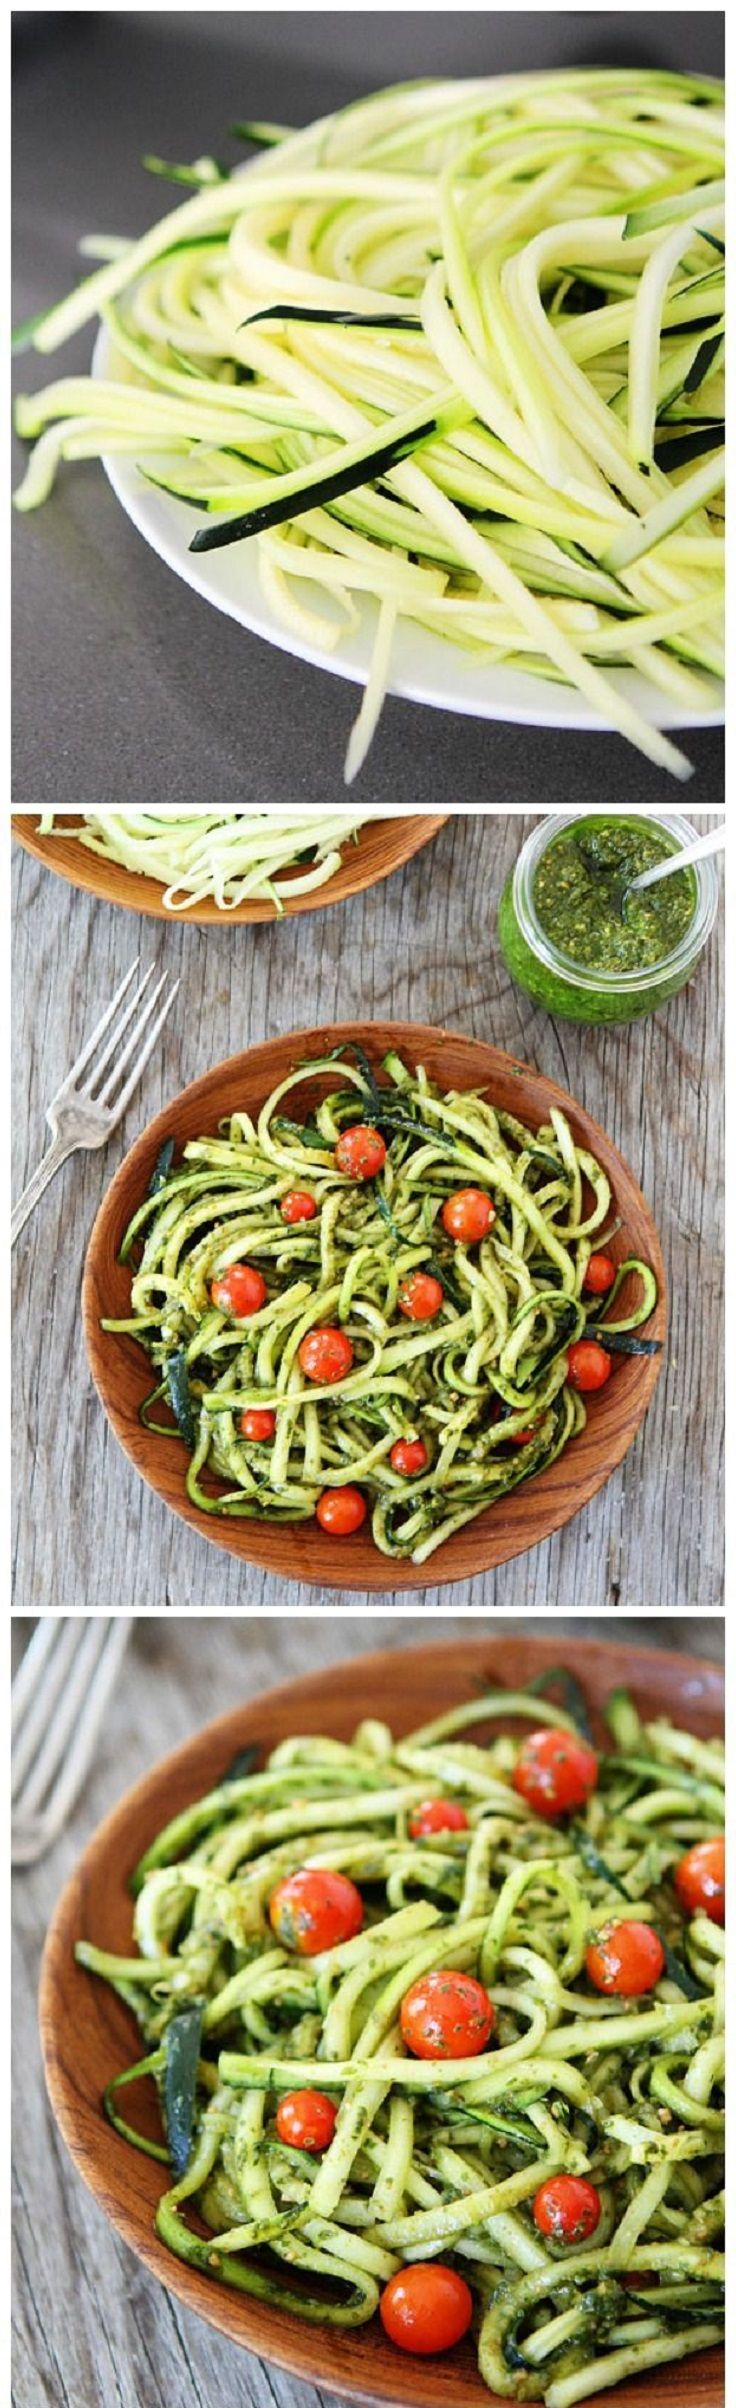 nike free run womens shoes black pink Zucchini Noodles with Pesto | Food and Drink |  | Zucchini Noodles, Noodles and Pesto